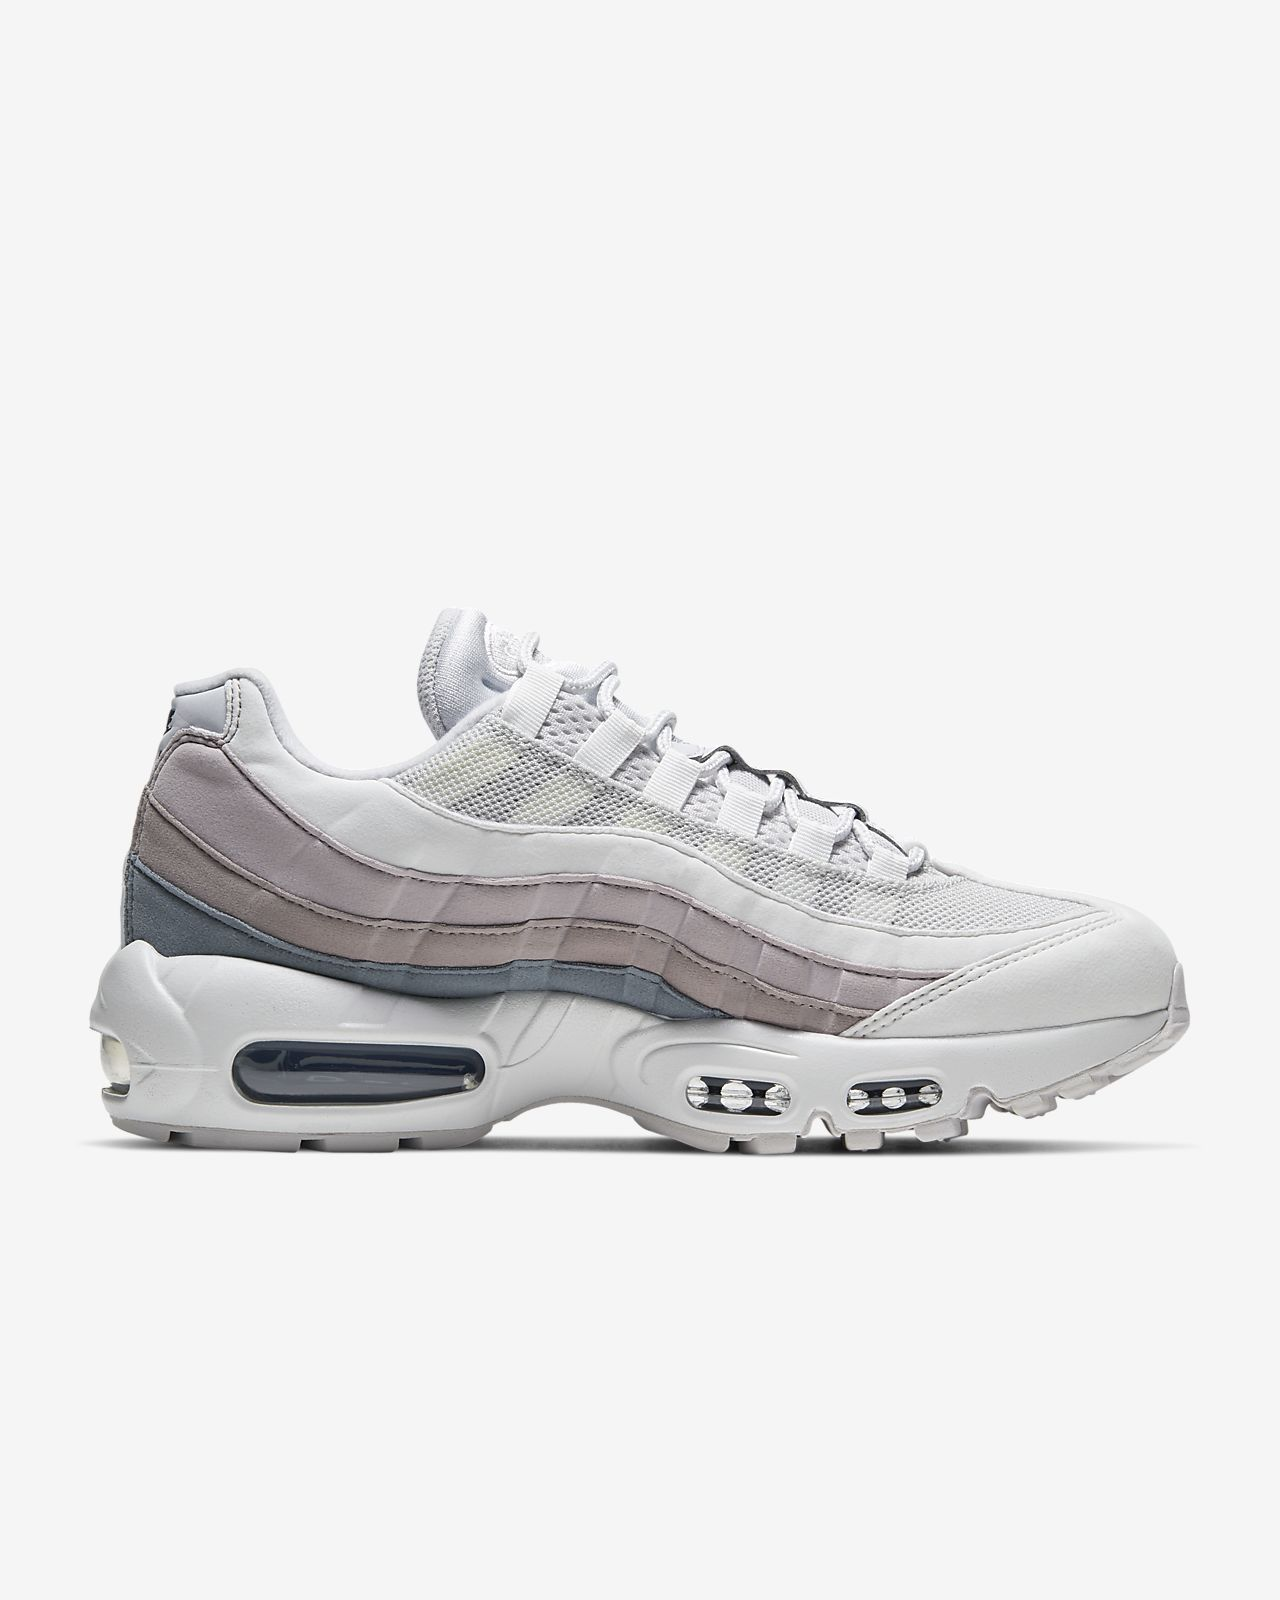 official photos 72b5f b346d ... Nike Air Max 95 Women s Shoe